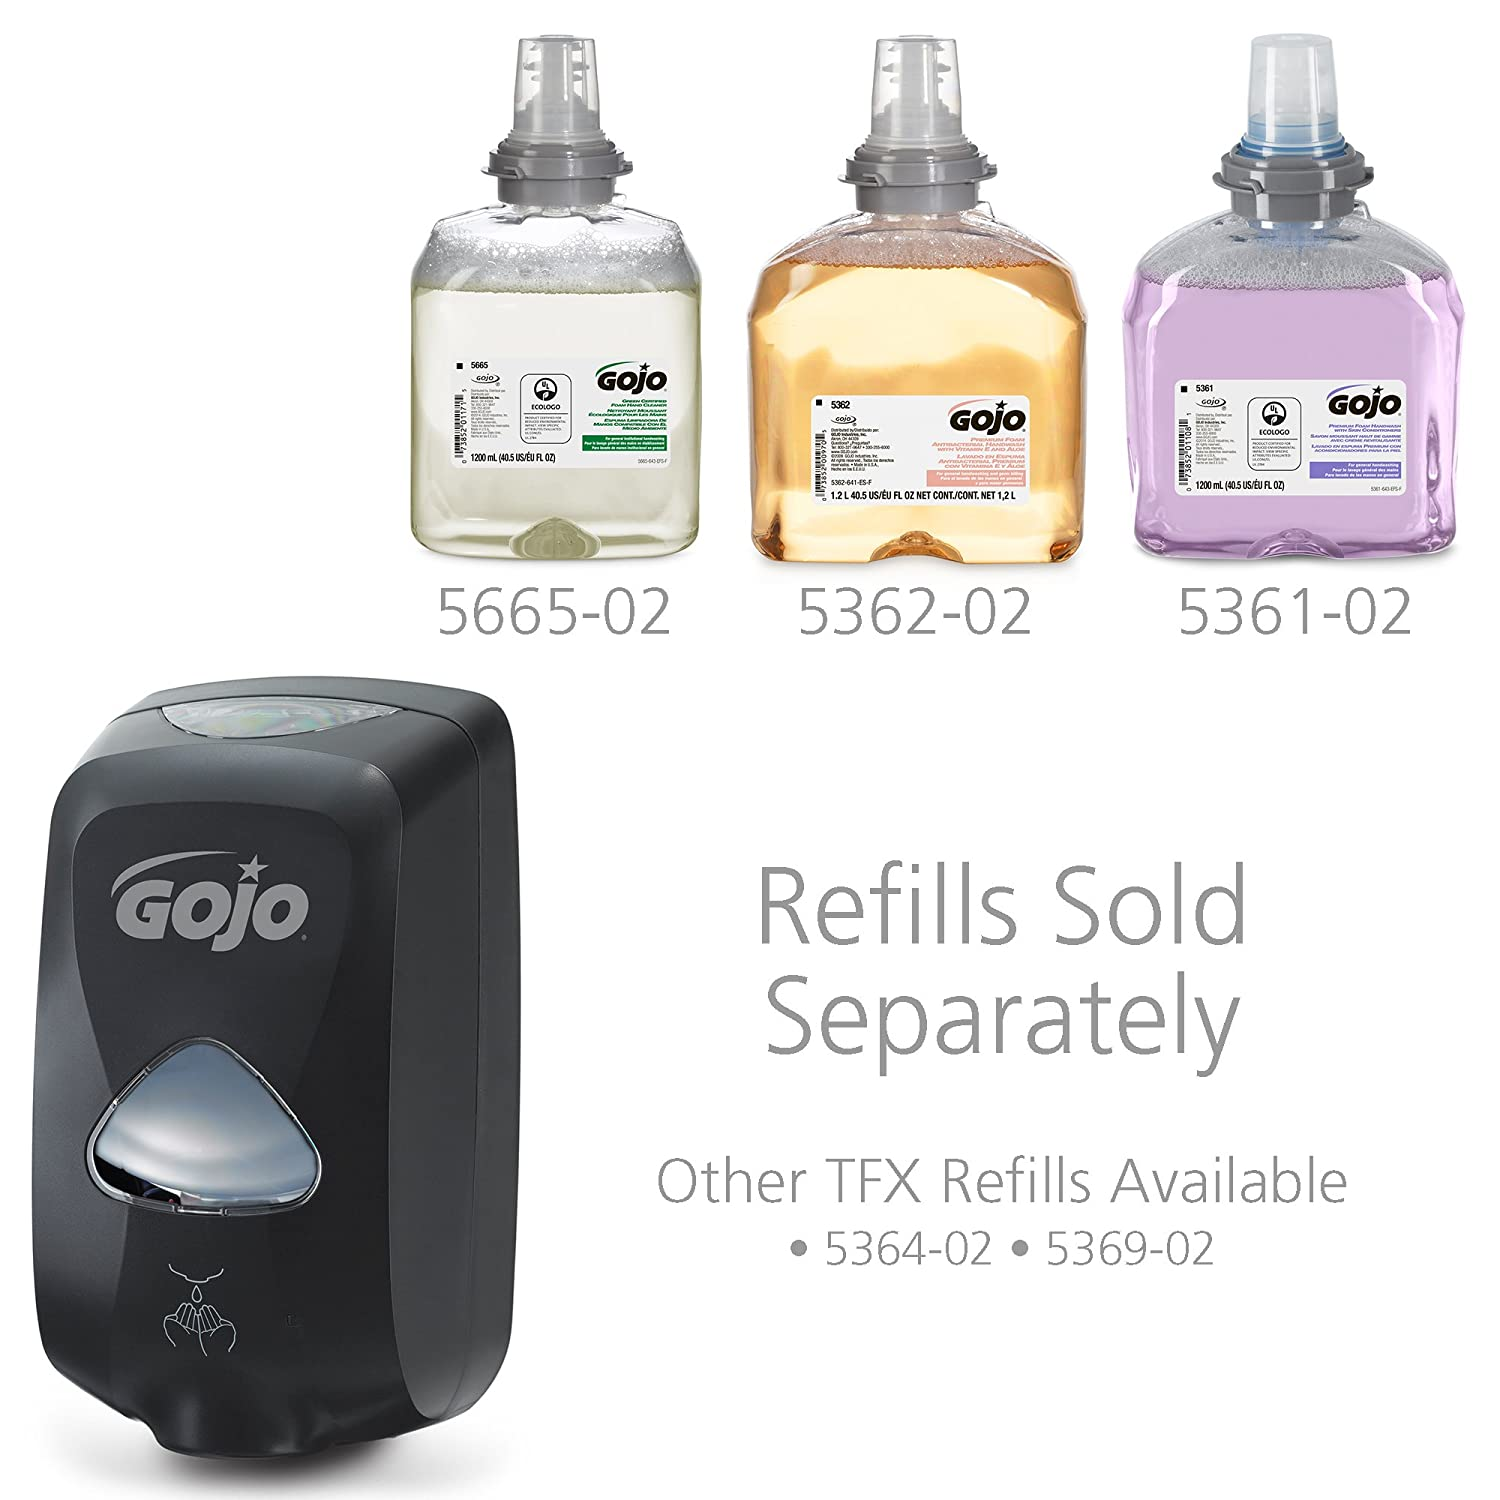 GOJO 2740-01 Dove Gray TFX Touch Free Dispenser with Matte Finish 6 Width x 10.5 Height x 4 Depth